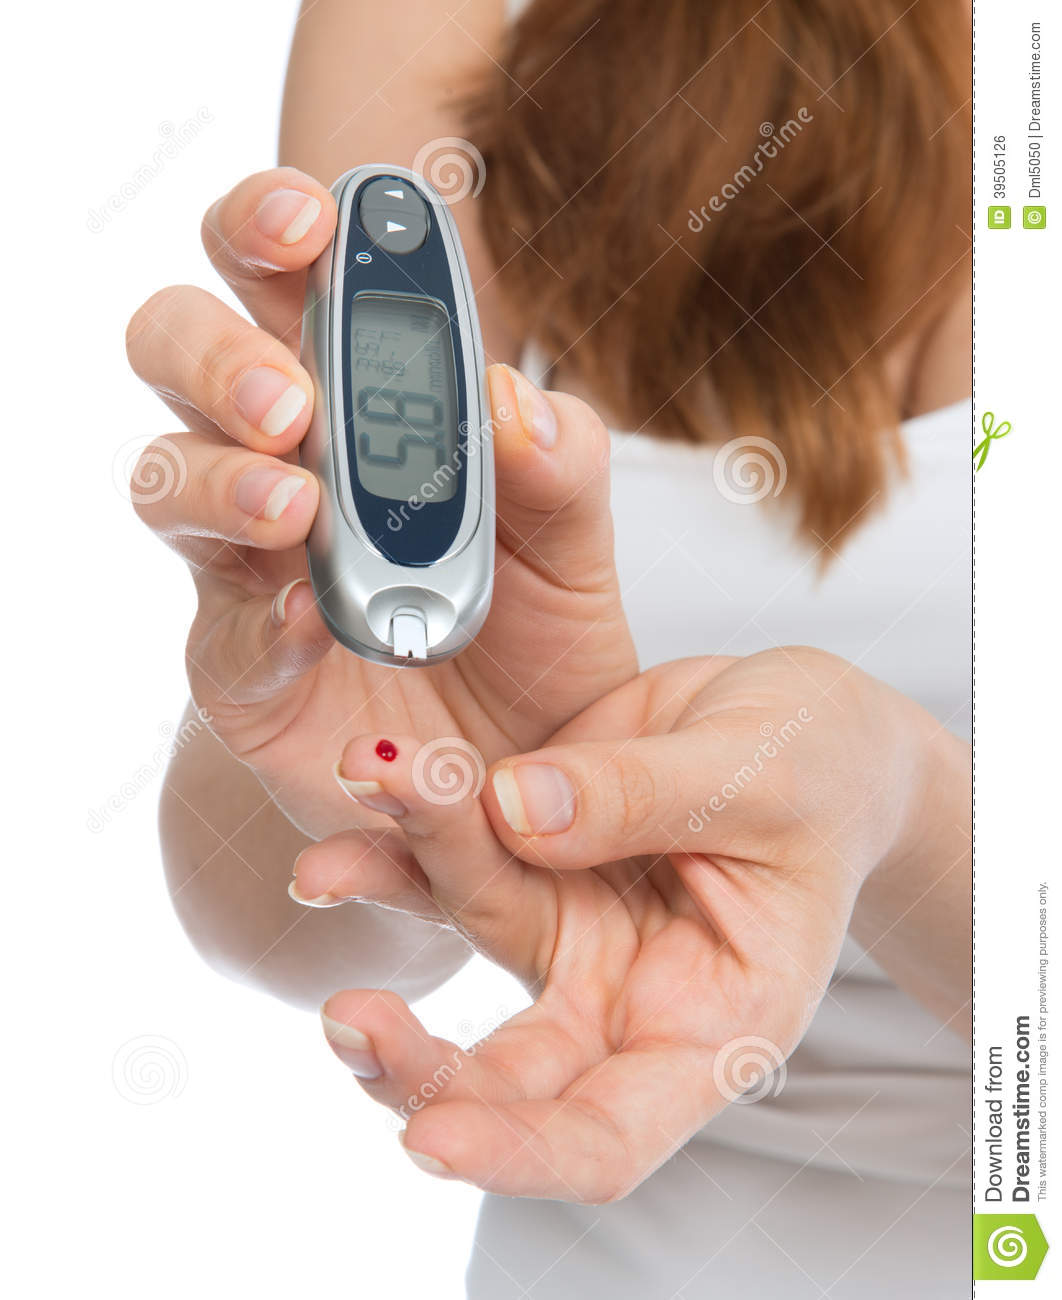 Diabetes patient measuring glucose level blood test with glucometer